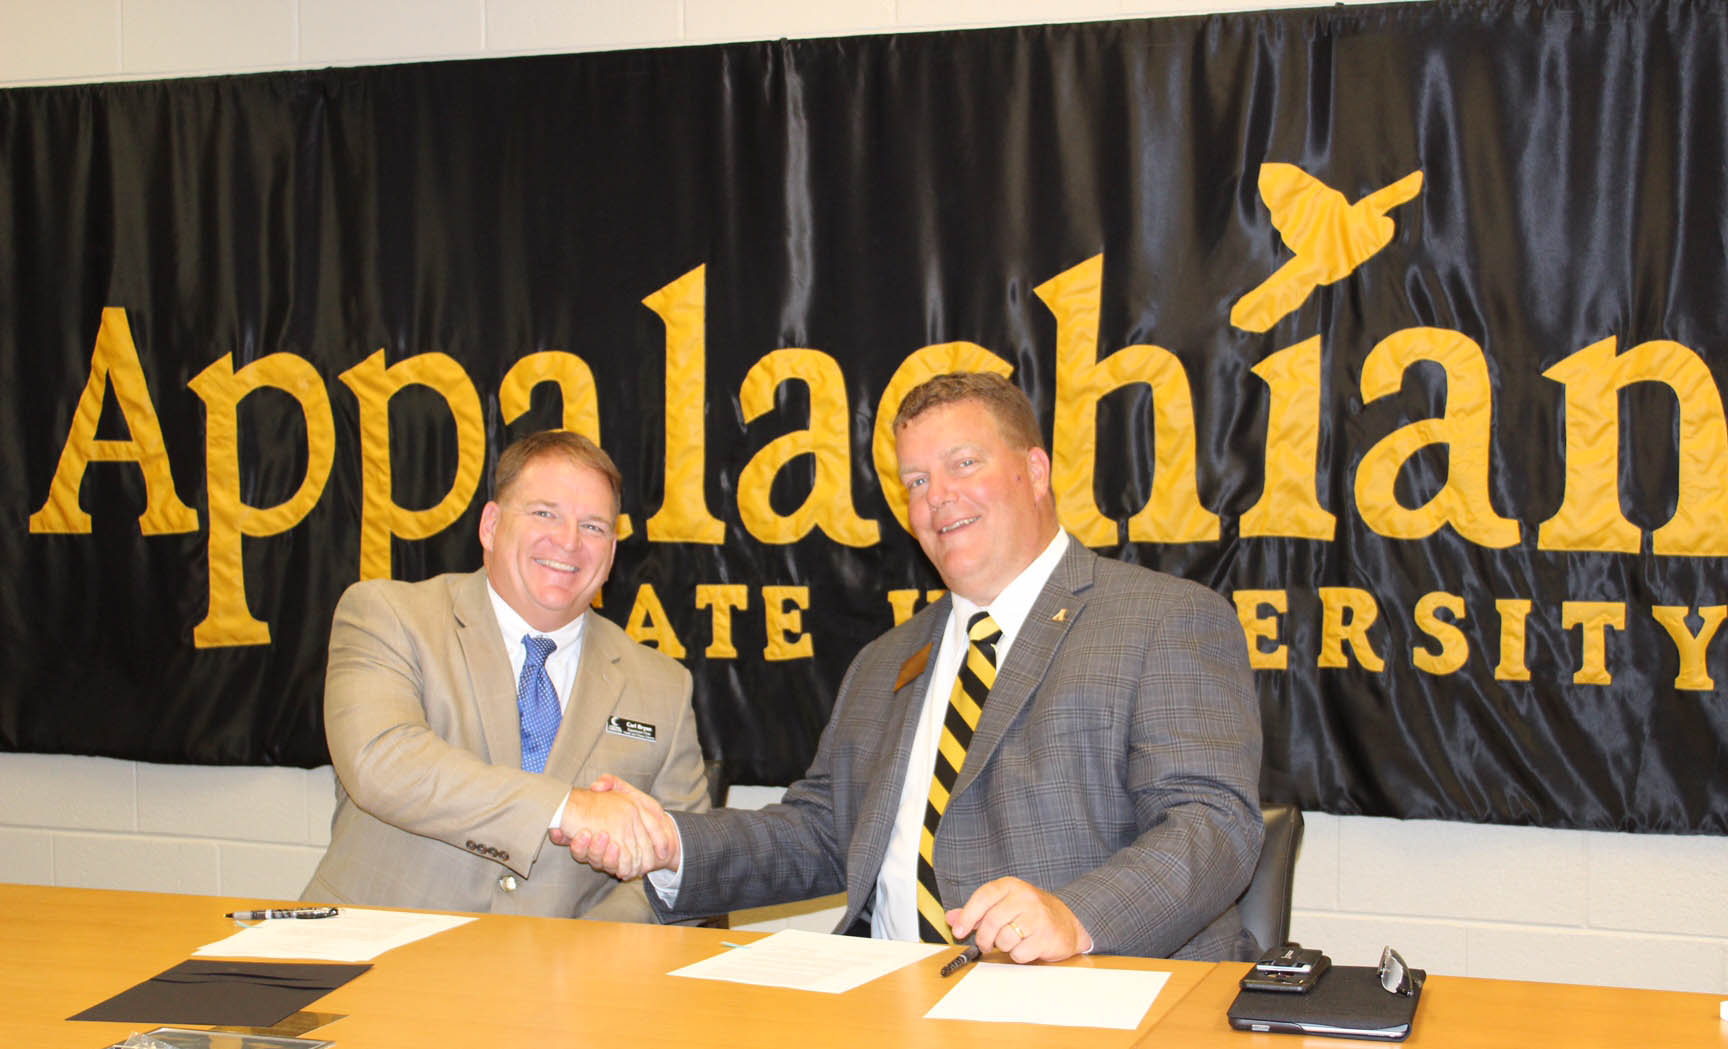 "Click to enlarge,  Central Carolina Community College's Health and Fitness Science program recently joined an articulation agreement with Appalachian State University. Carl Bryan (left), CCCC Health and Fitness Science Program Director, and Dr. Mark Ginn, ASU Vice Provost for Undergraduate Education, signed the agreement. ""I am very excited for our Health and Fitness Science students for this new articulation agreement. It provides yet another pathway for our students to continue their education after obtaining an Associate in Applied Science degree here at Central Carolina,"" said Bryan, who noted that the CCCC Health and Fitness Science program also has articulation agreements with UNC-Wilmington and N.C. Wesleyan College. ""The support of our Health and Fitness Science curriculum is overwhelming at ASU, and they have provided a seamless transfer for our Associate in Applied Science students to enter into their pursuit of a Bachelor's degree at ASU. The work we are doing in the classroom and labs at CCCC works in concert with what ASU is doing in their Bachelor's degree in Exercise Science."" For more information on the CCCC Health and Fitness Science program, contact Program Director Carl Bryan at 919-718-7554 or by email at cbryan@cccc.edu."